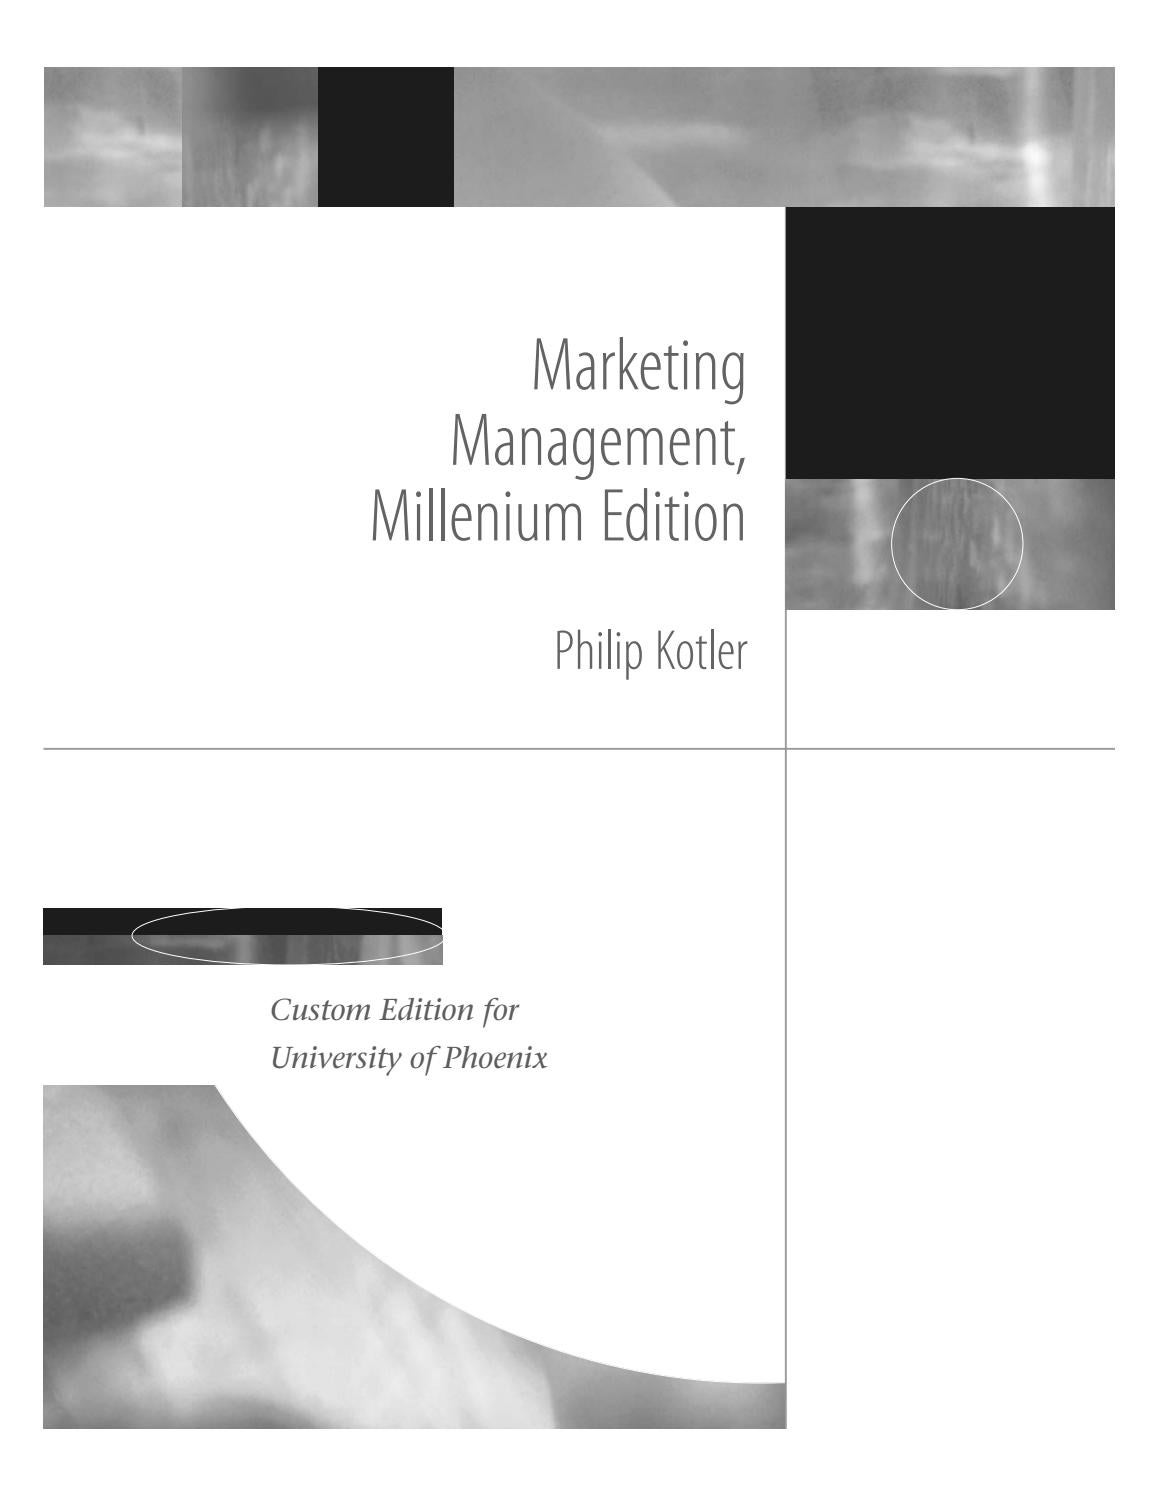 Marketing management - the millennium edition by Utkarsh Gautam - issuu